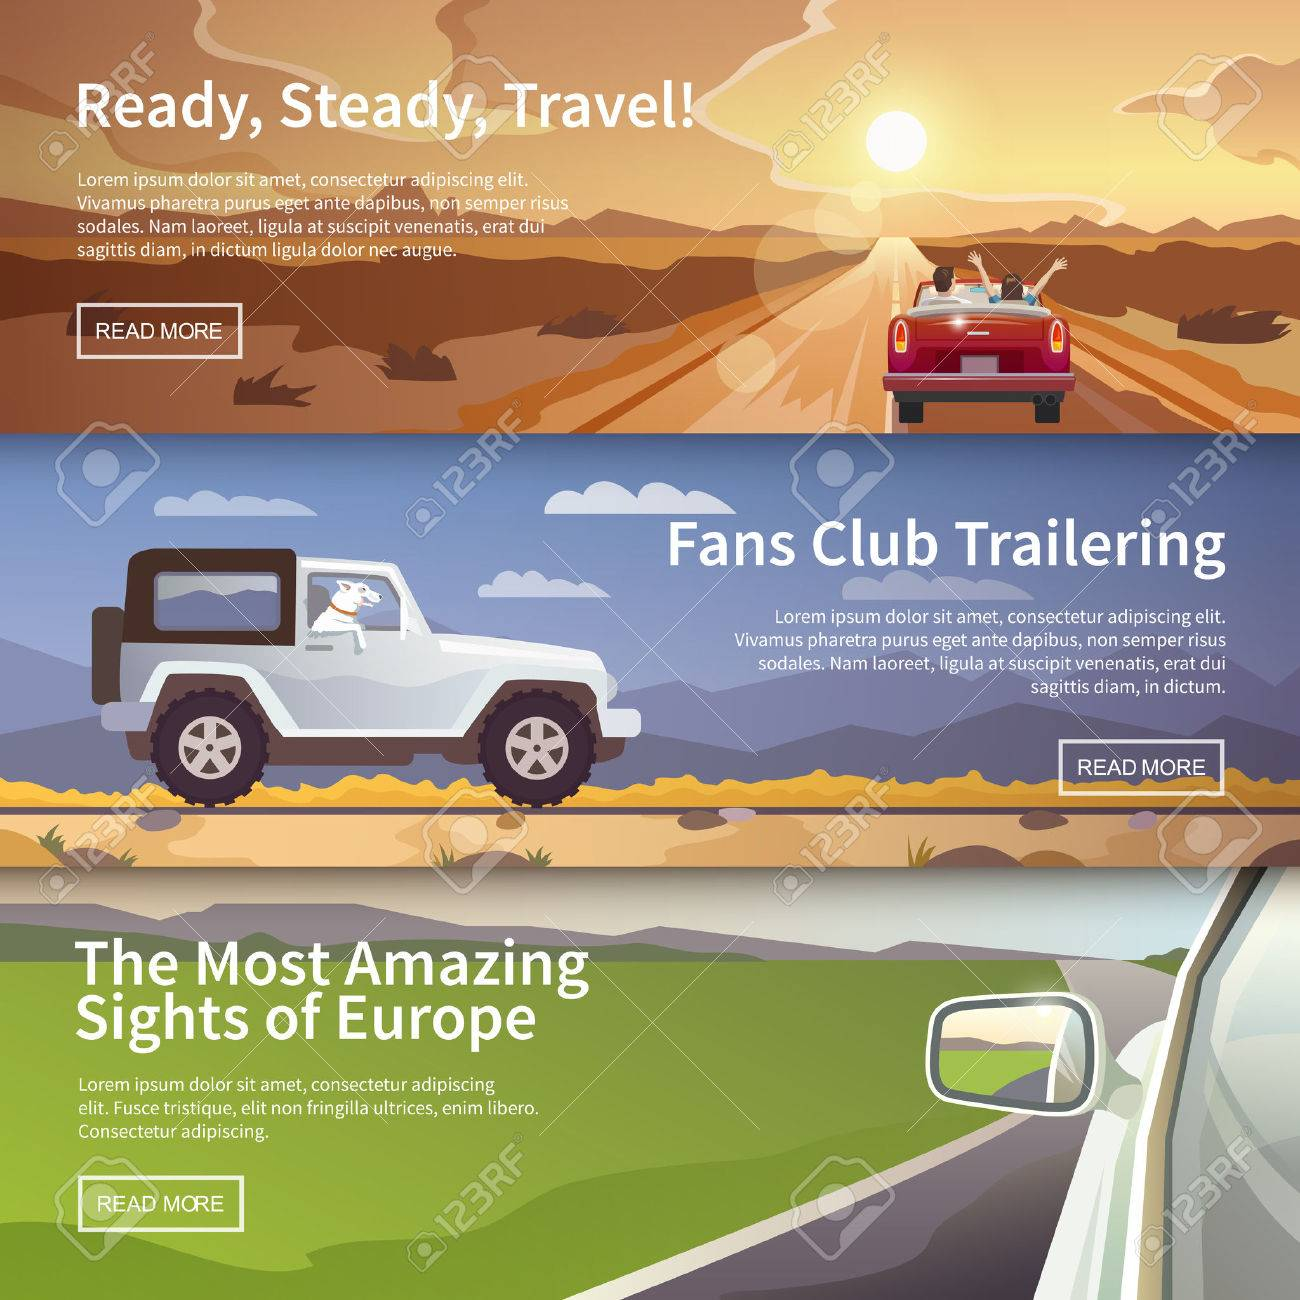 Colourful vector flat banner set for your business, web sites etc. Quality design illustrations, elements and concept. Journey by car. Fans club trailering. Trip to Europe. - 50303902